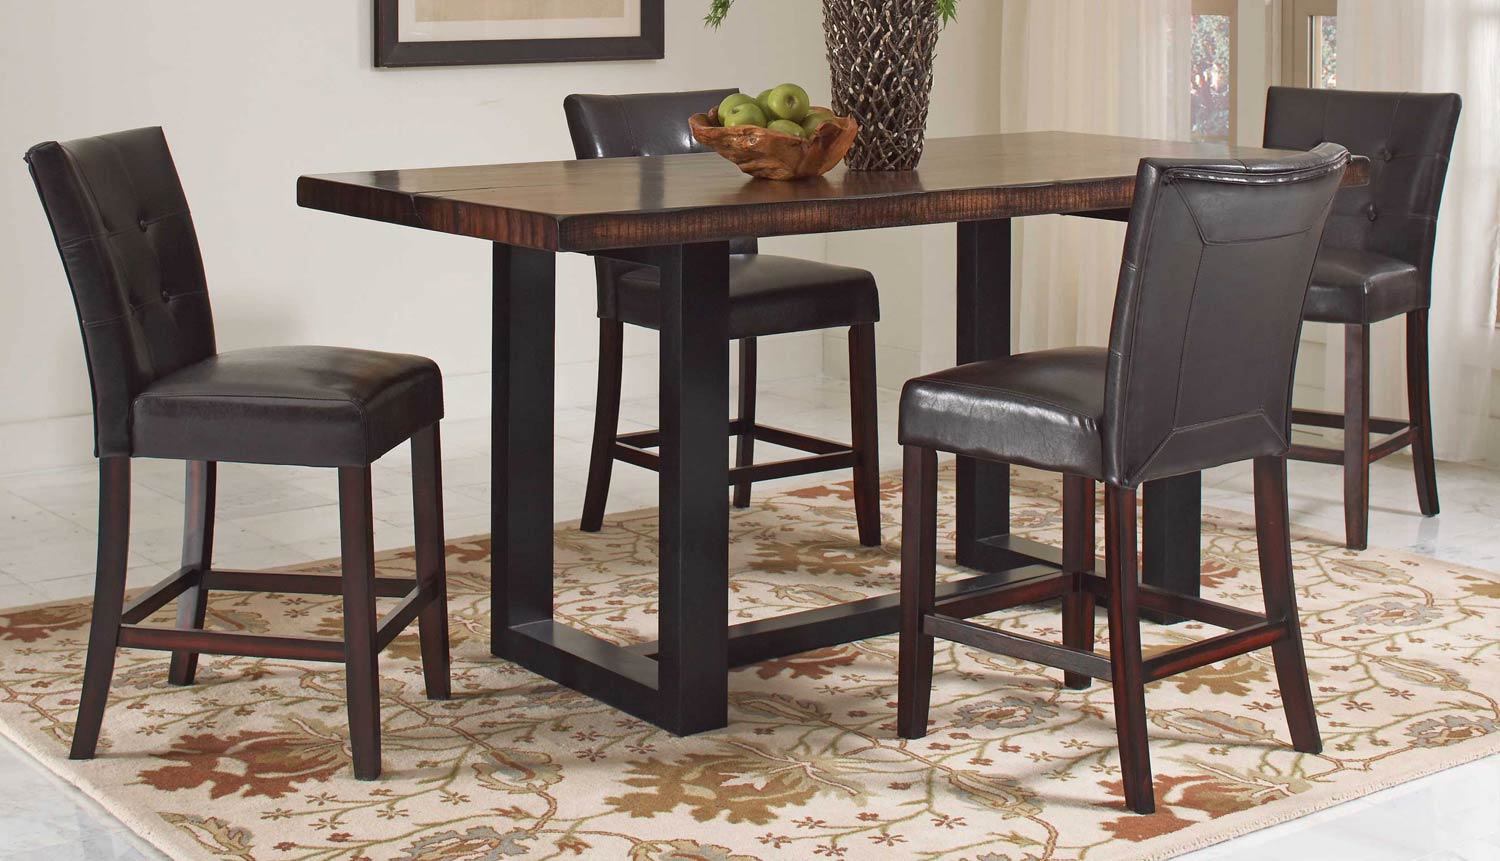 Coaster Westbrook Counter Height Dining Set - Brown/ Black